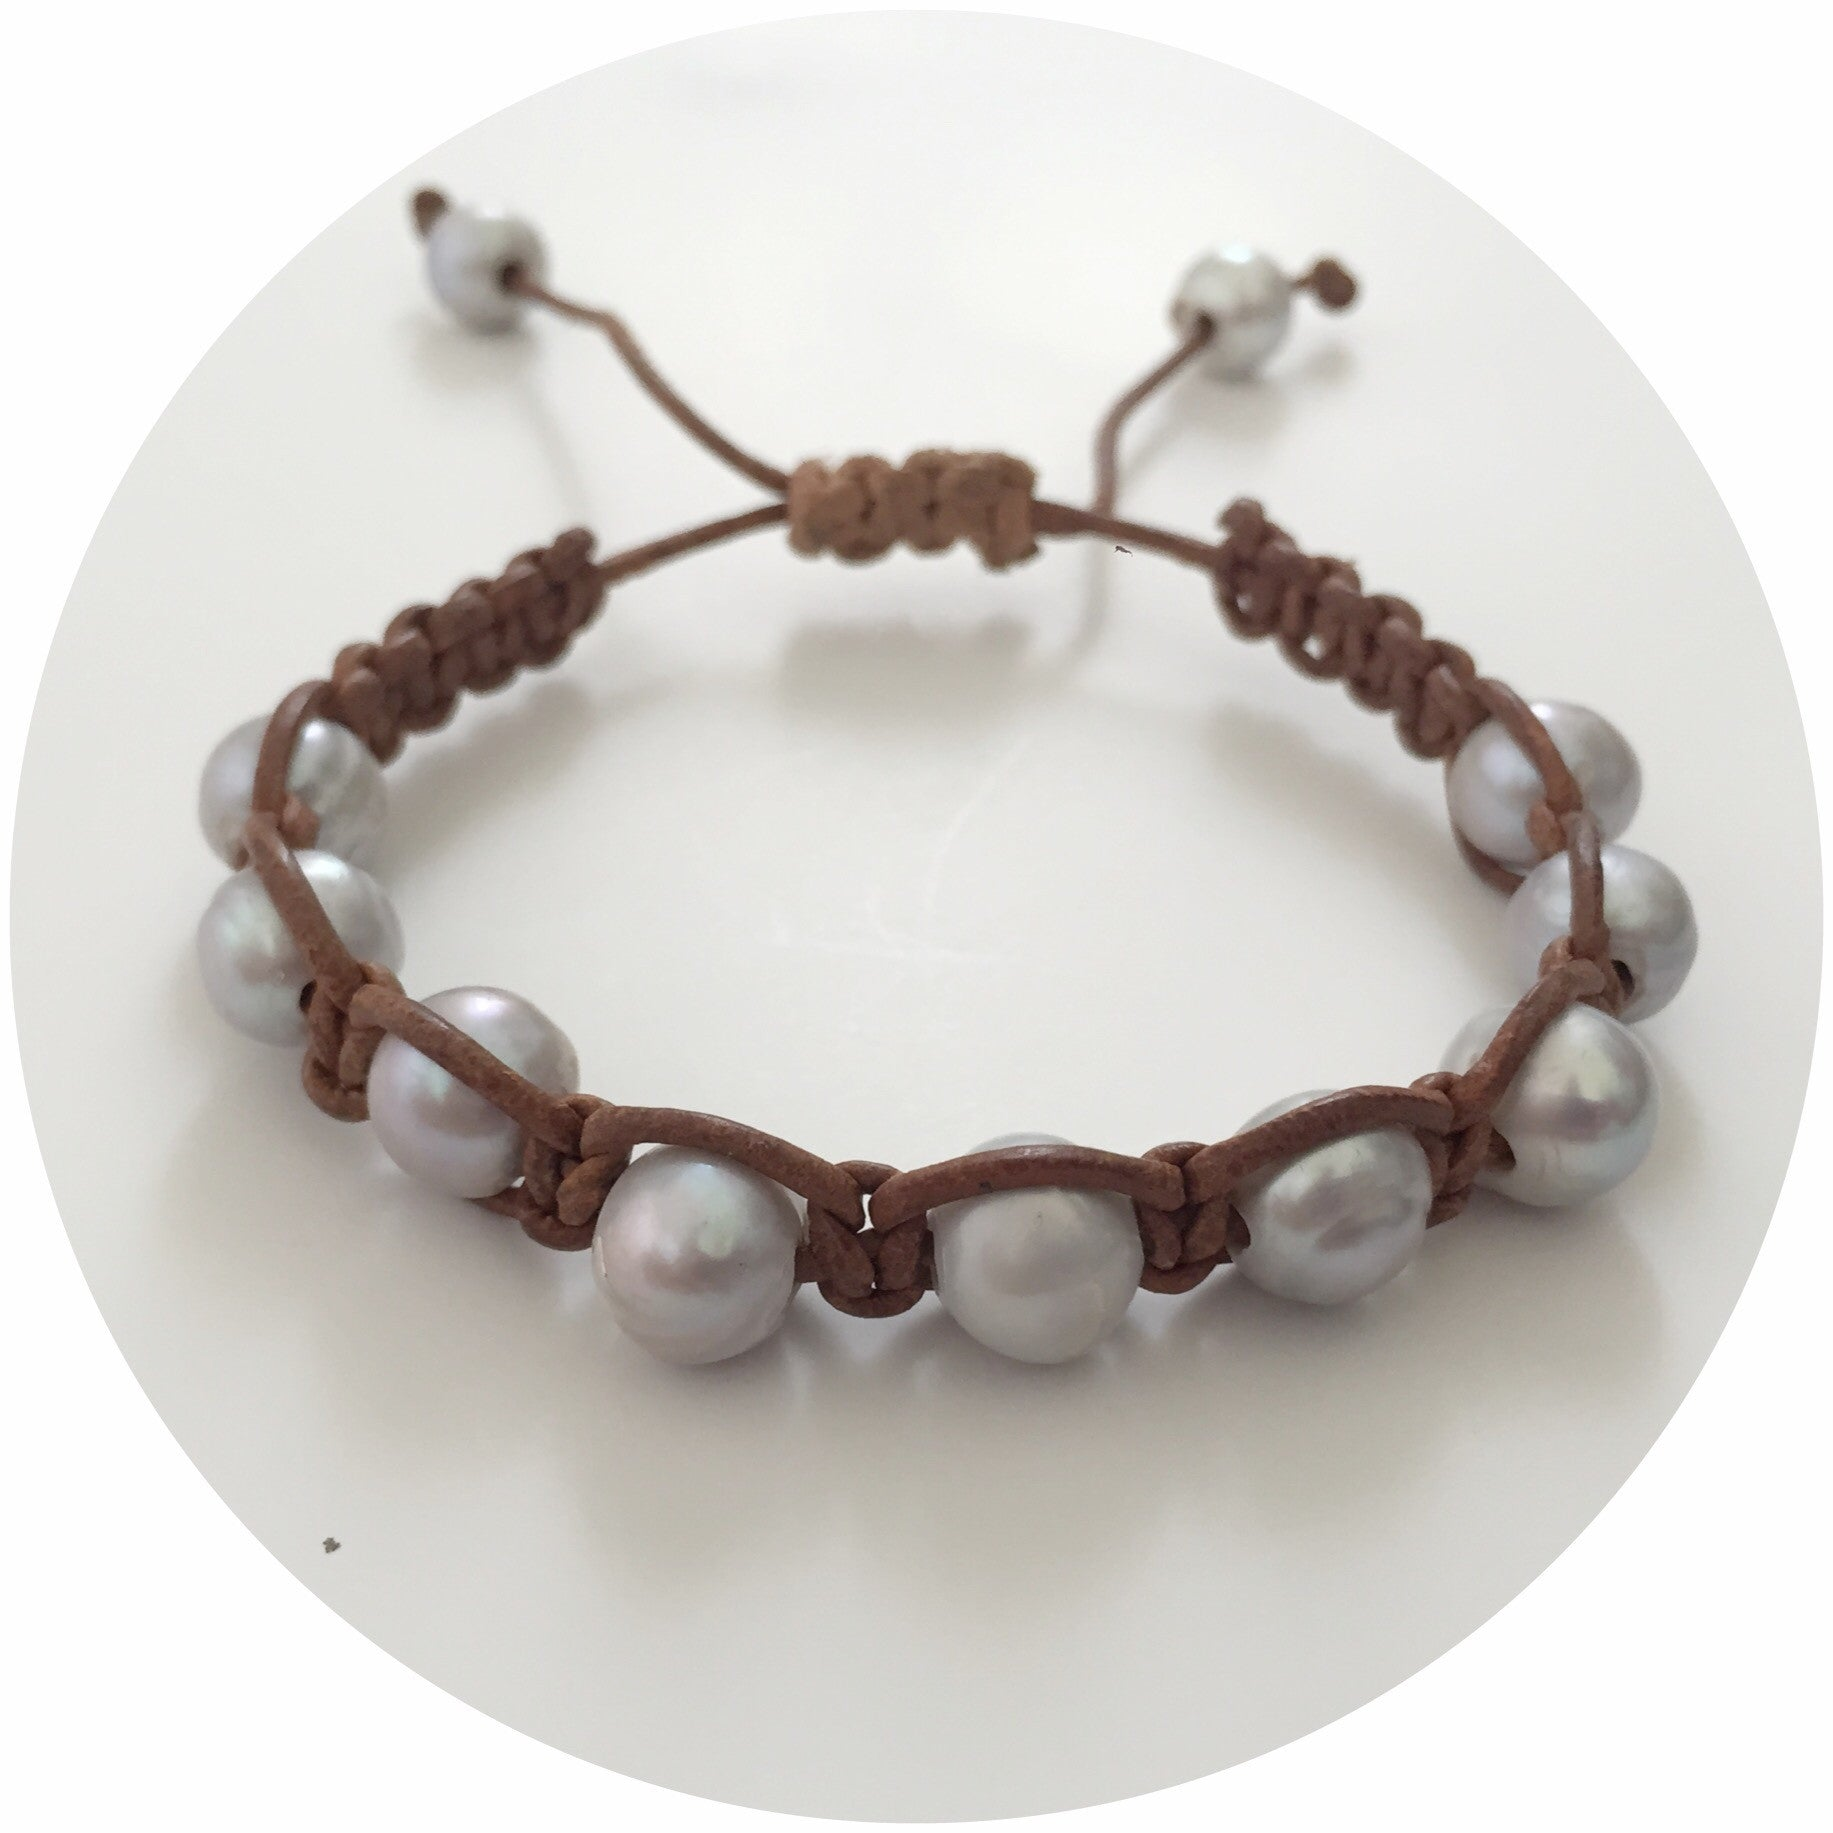 Natural Leather with Gris Pearl Shamballa Bracelet - Oriana Lamarca LLC